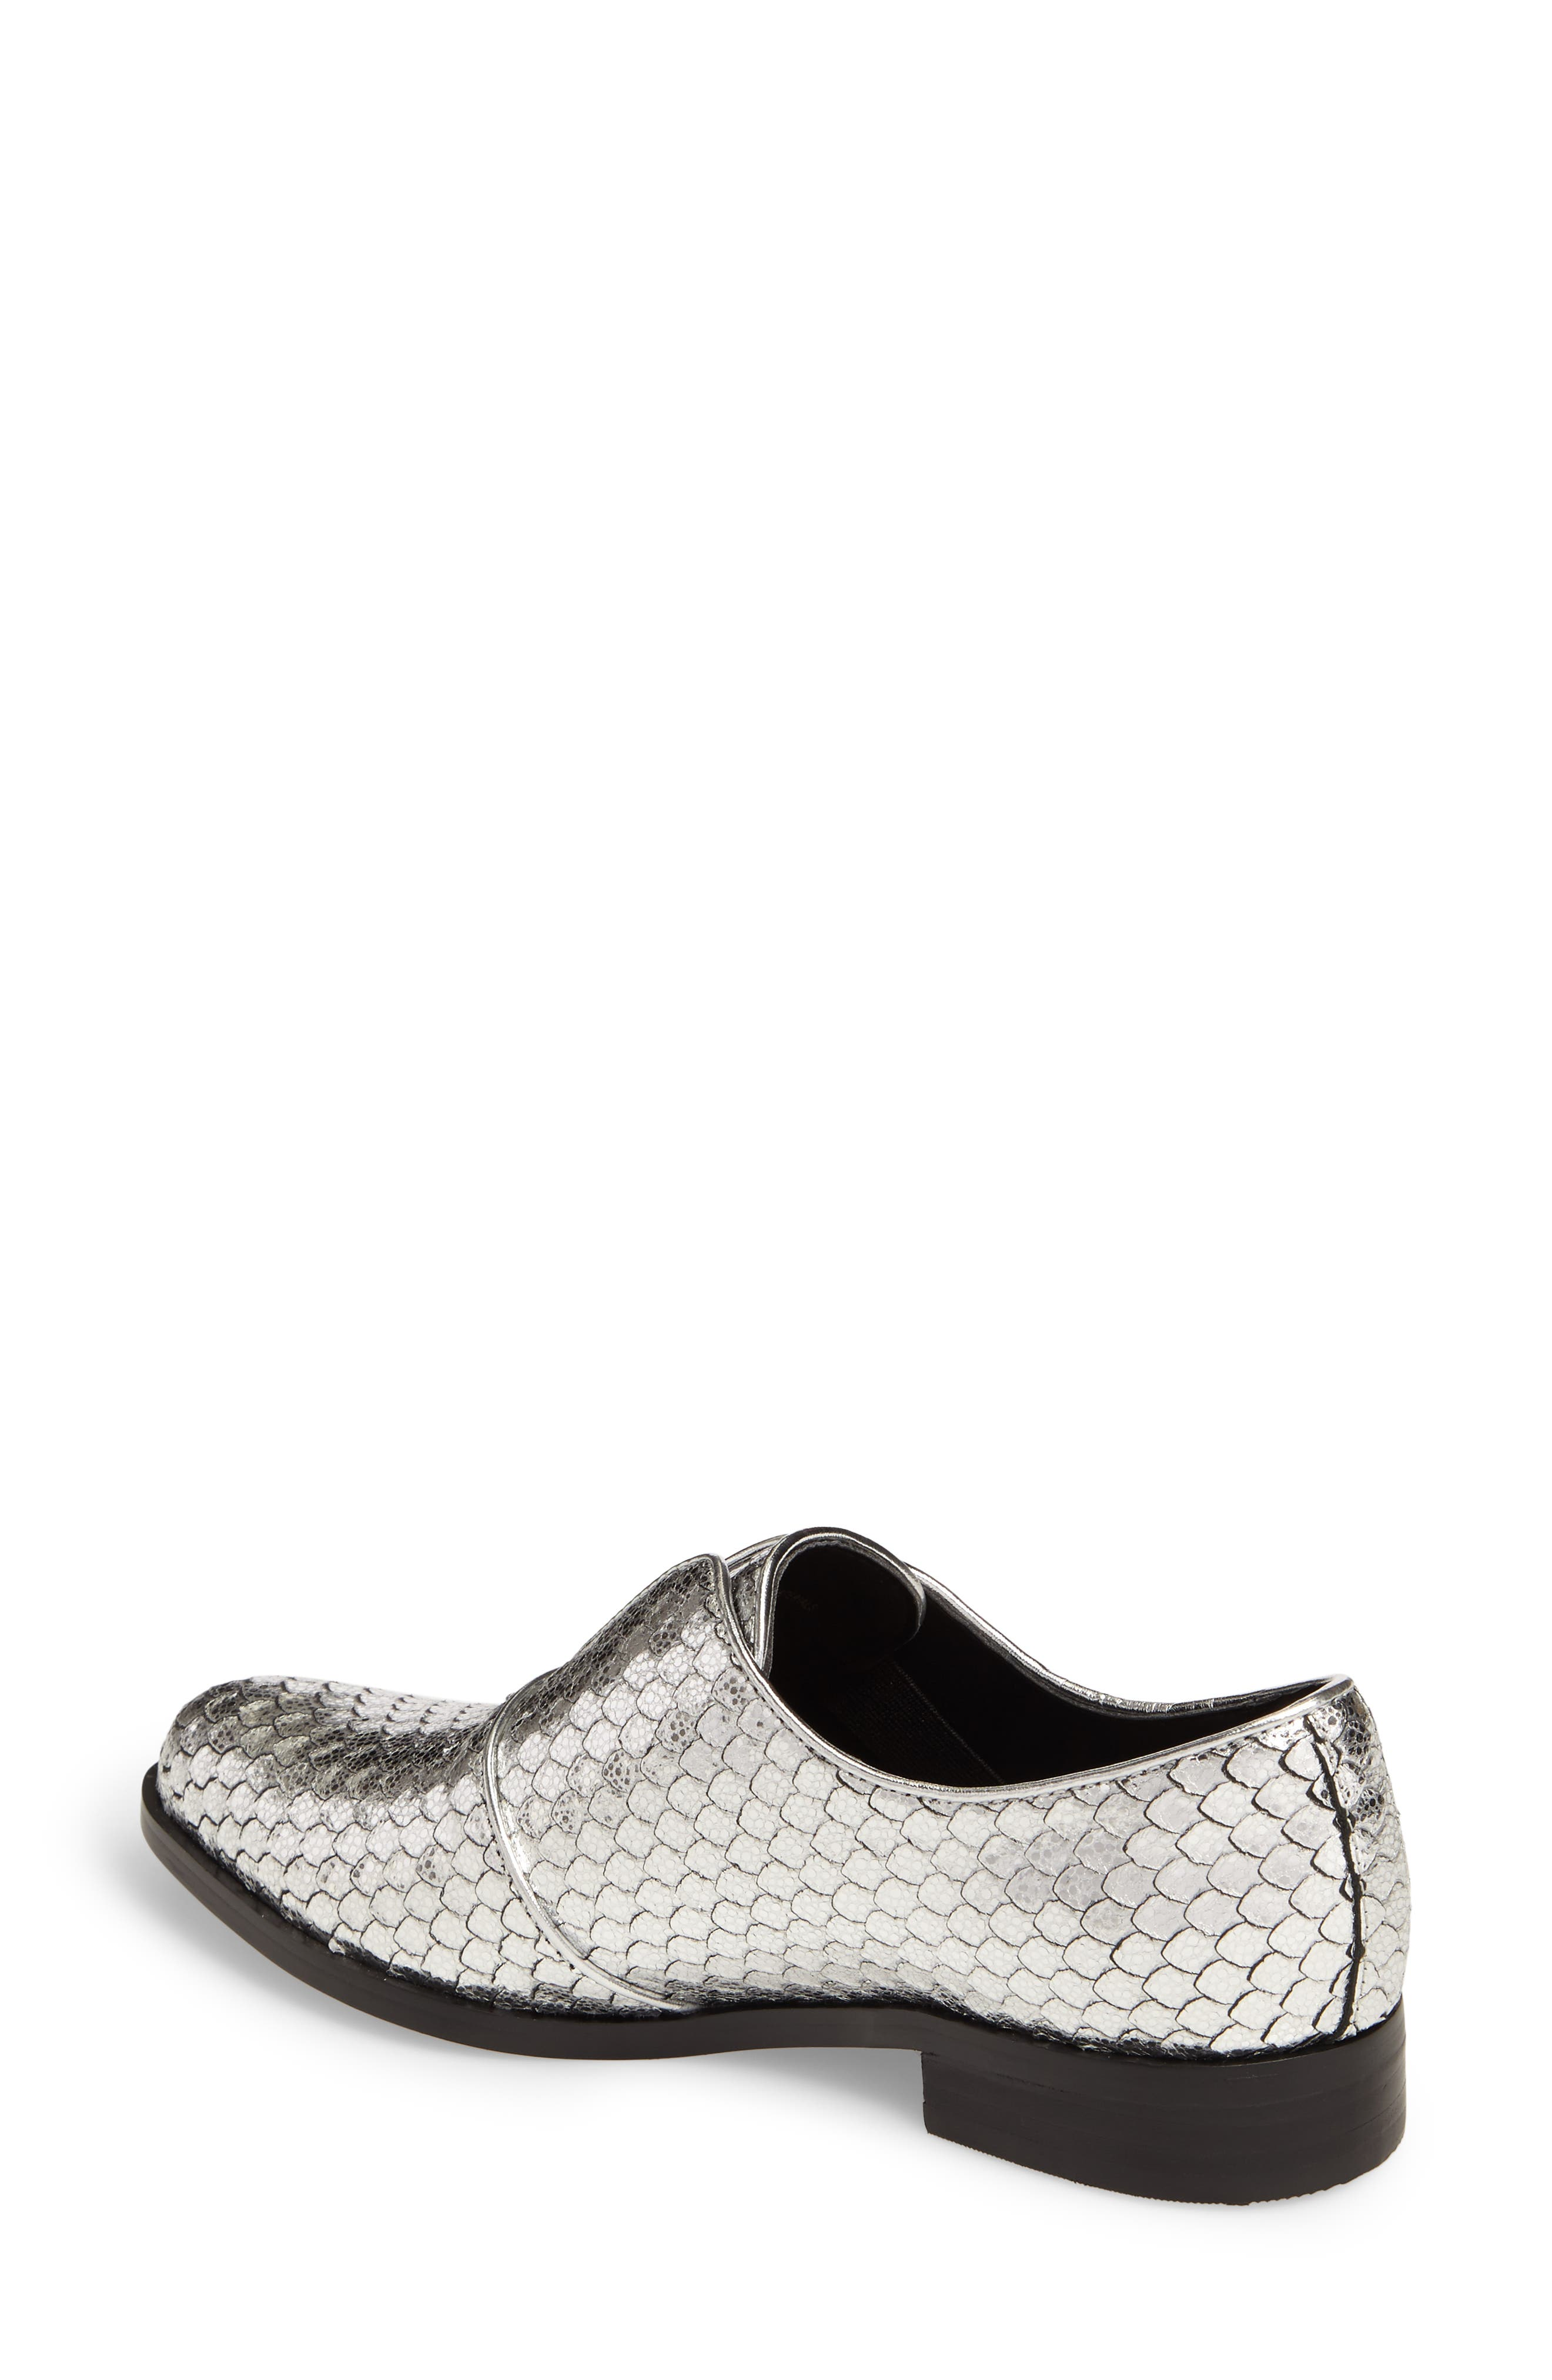 Isola Maria Slip-On Oxford,                             Alternate thumbnail 2, color,                             Silver Cut Snake Print Leather